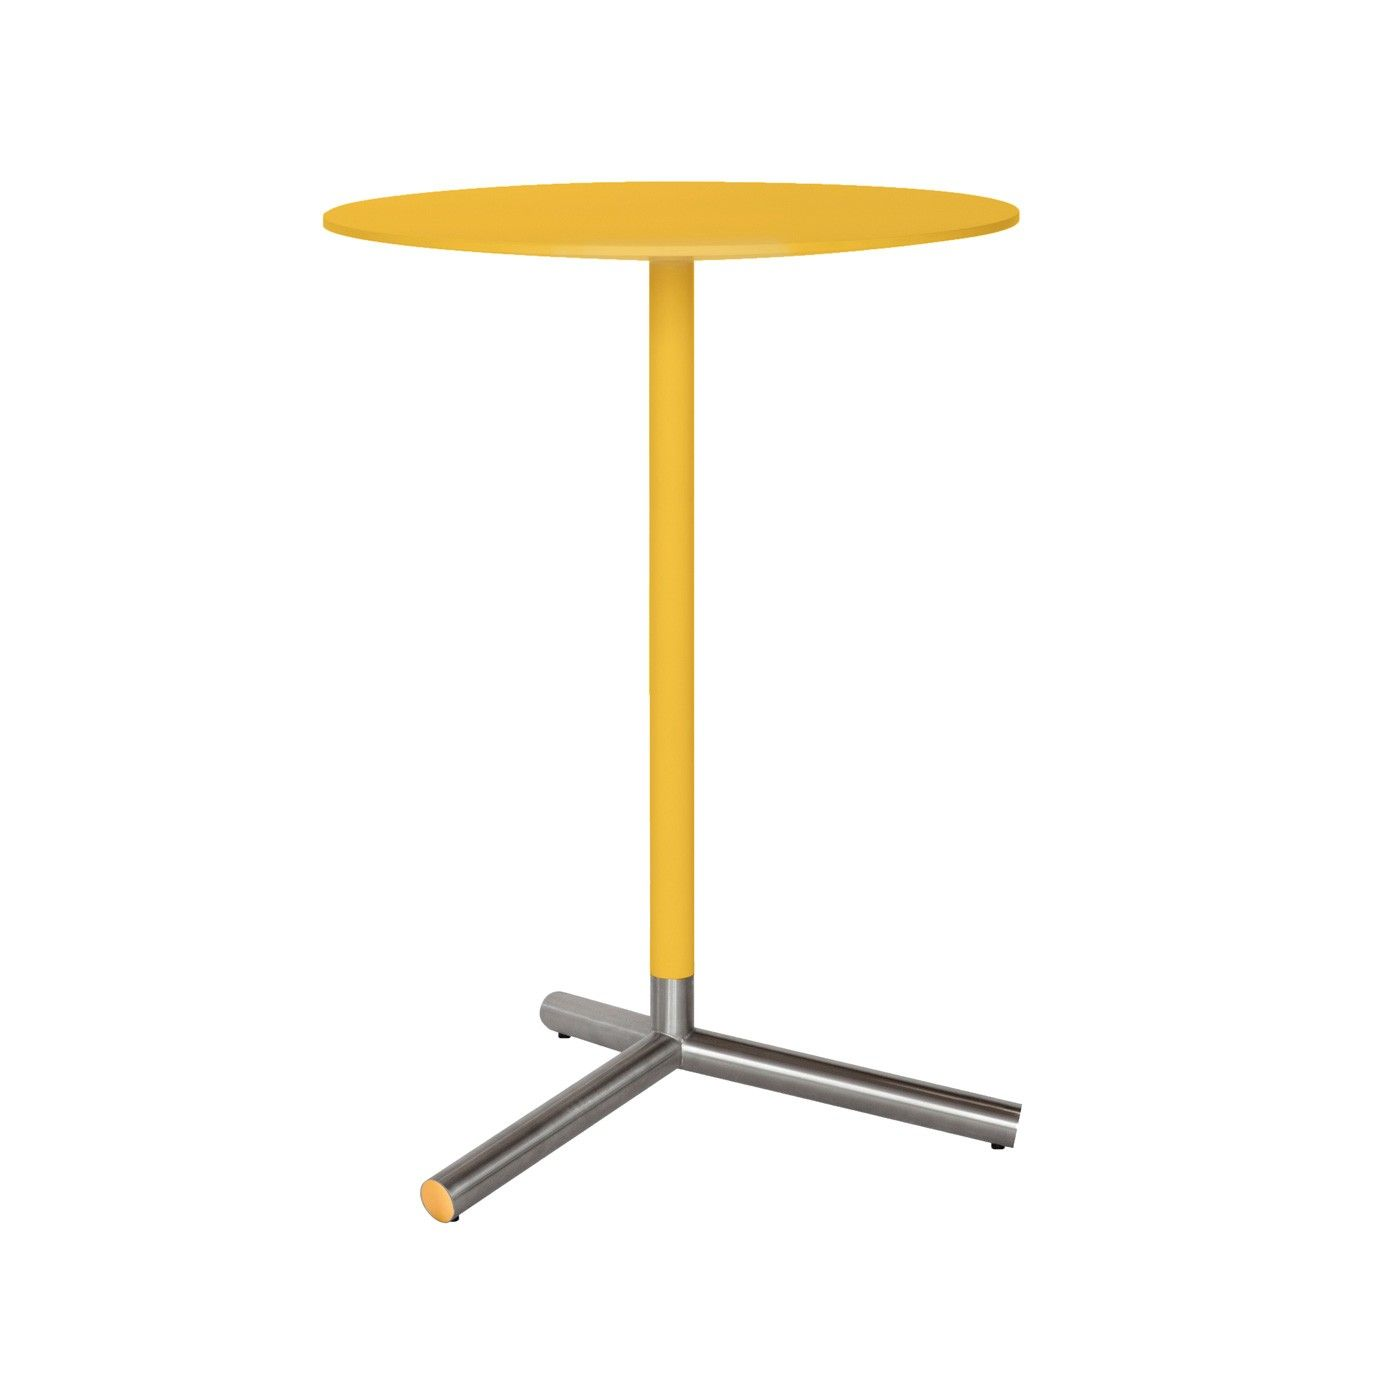 Wonderful Modern Table   Sprout Bar Height Cafe Table By Blu Dot